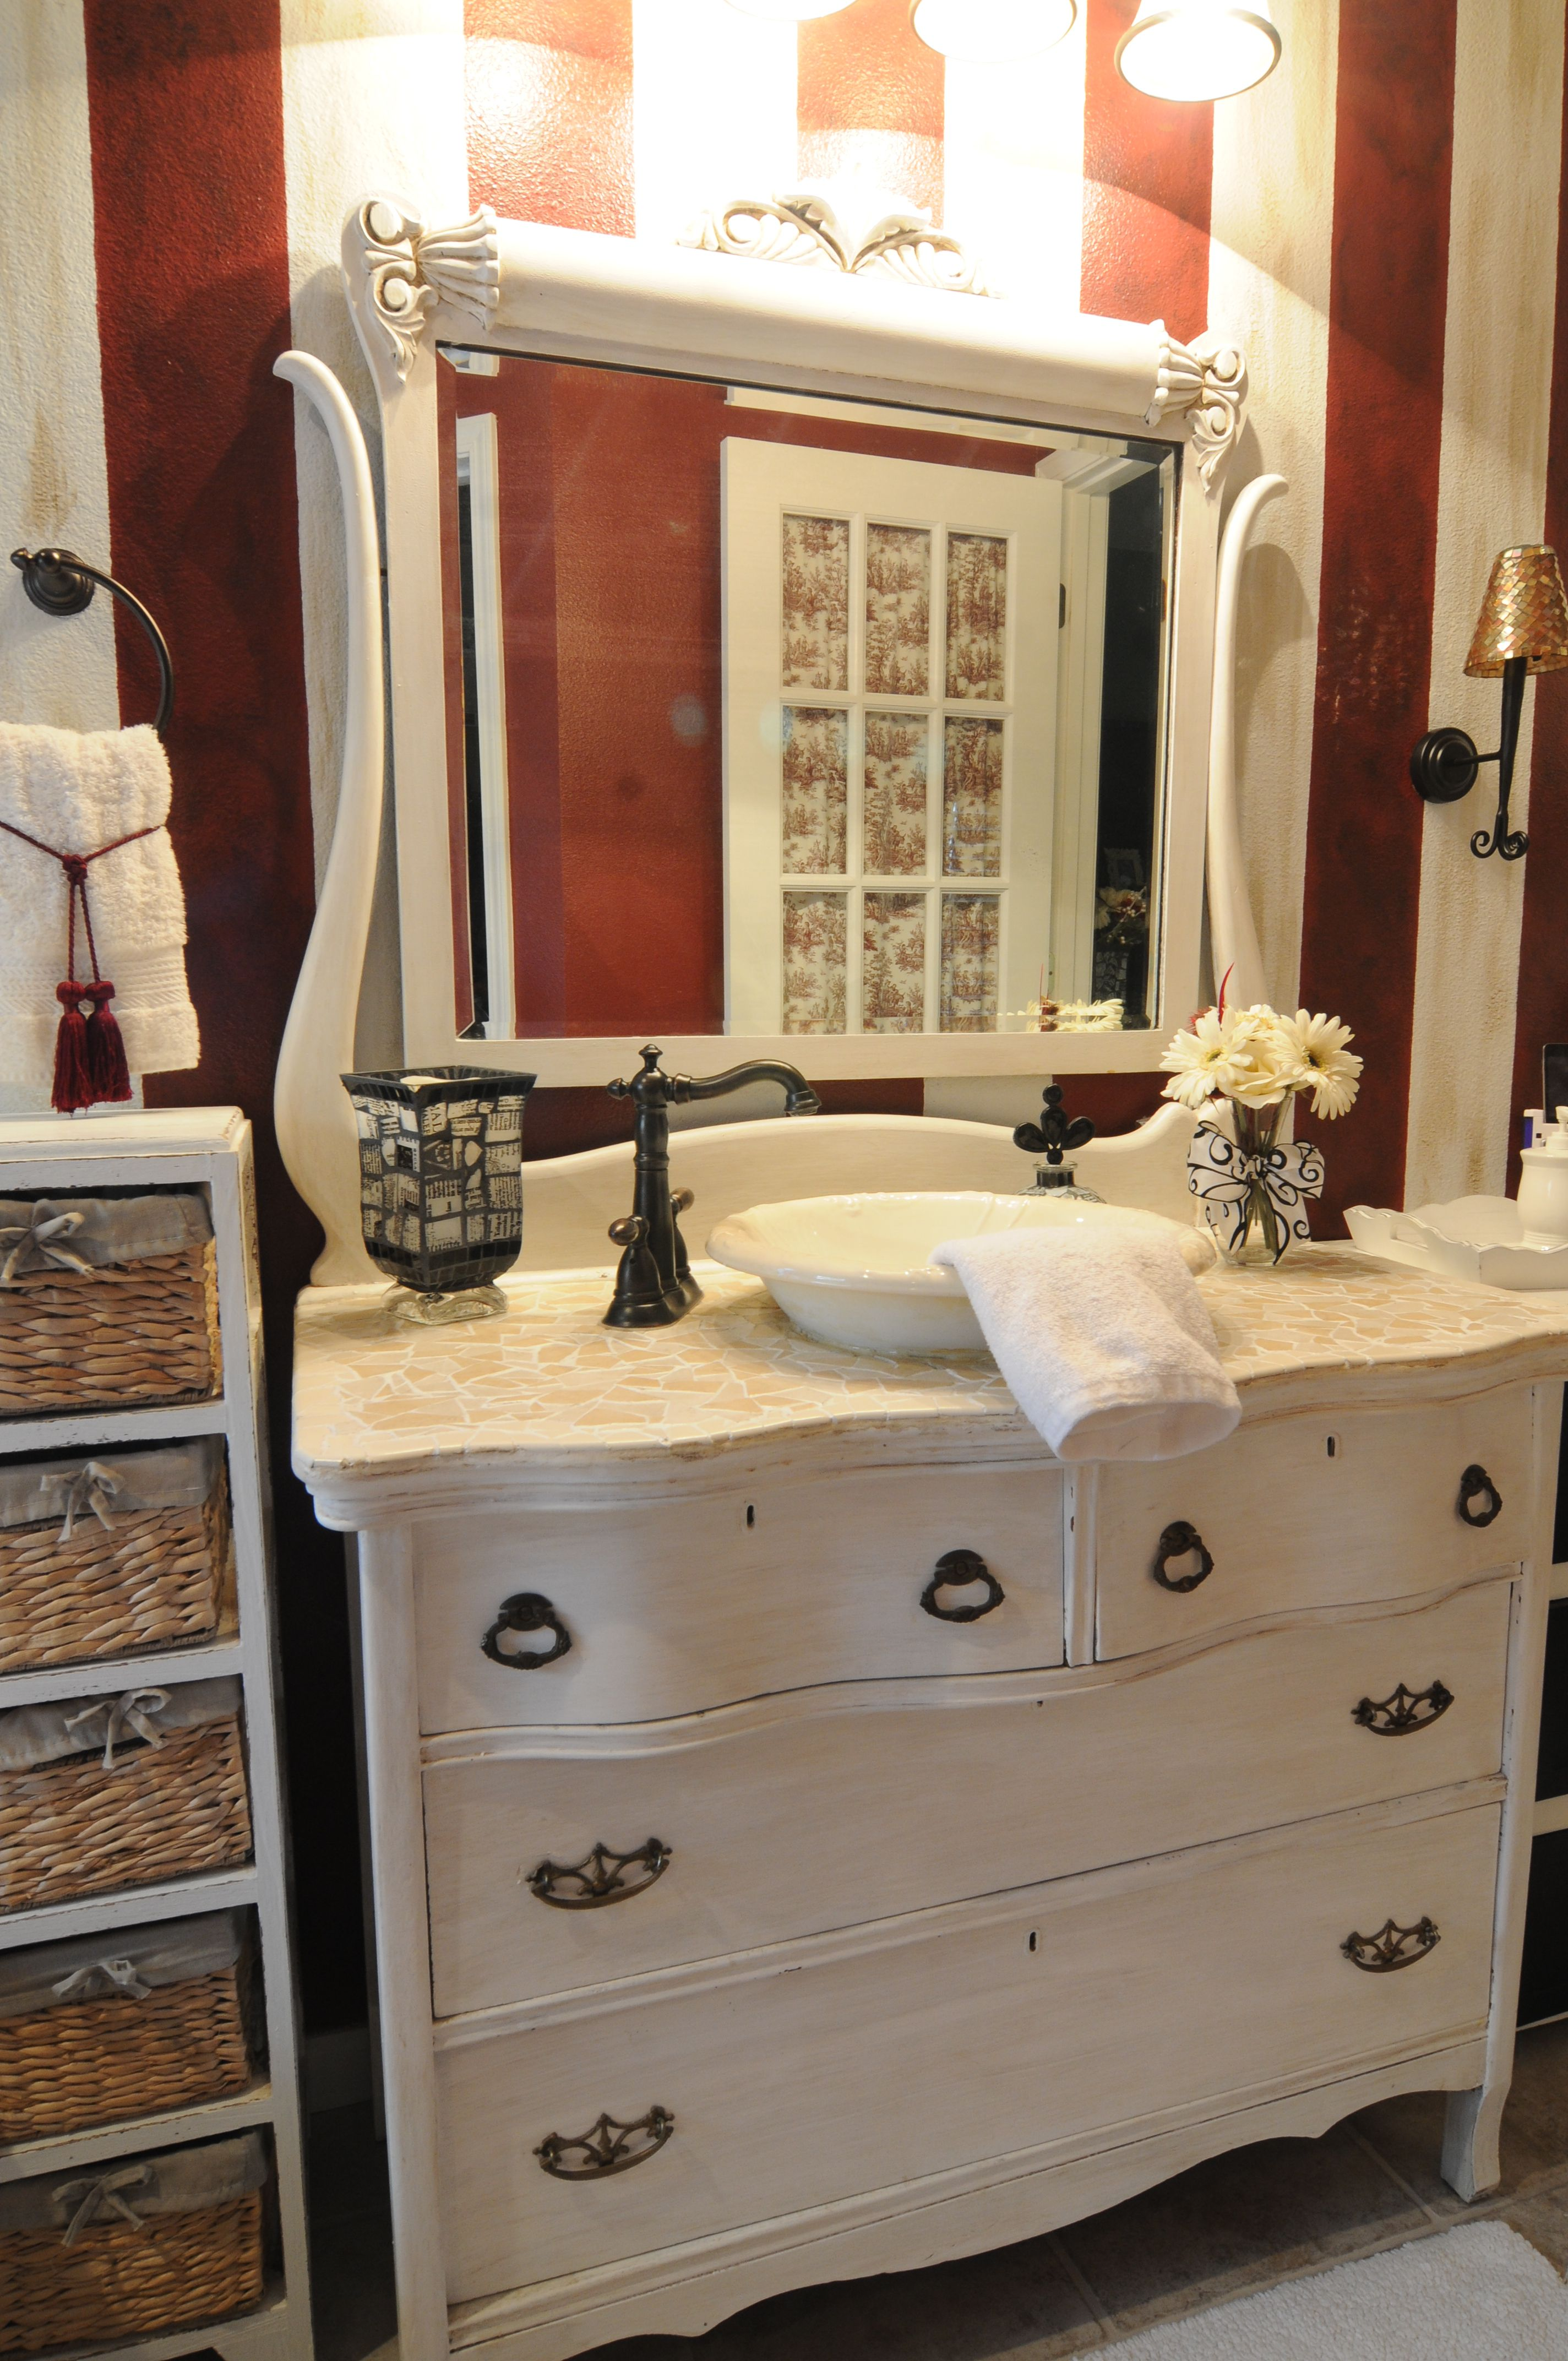 bathroom cabinets double sink designs html with Book Of Bathroom Vanities Made From Dressers In Us on 24 Everett Vessel Sink Vanity White besides 08fb73f7530a2db9 as well 24a604a38763652a together with Diy Bathroom Vanity Tips To Organize Stuff More Neatly further 36 Orzoco Black Vessel Sink Vanity.